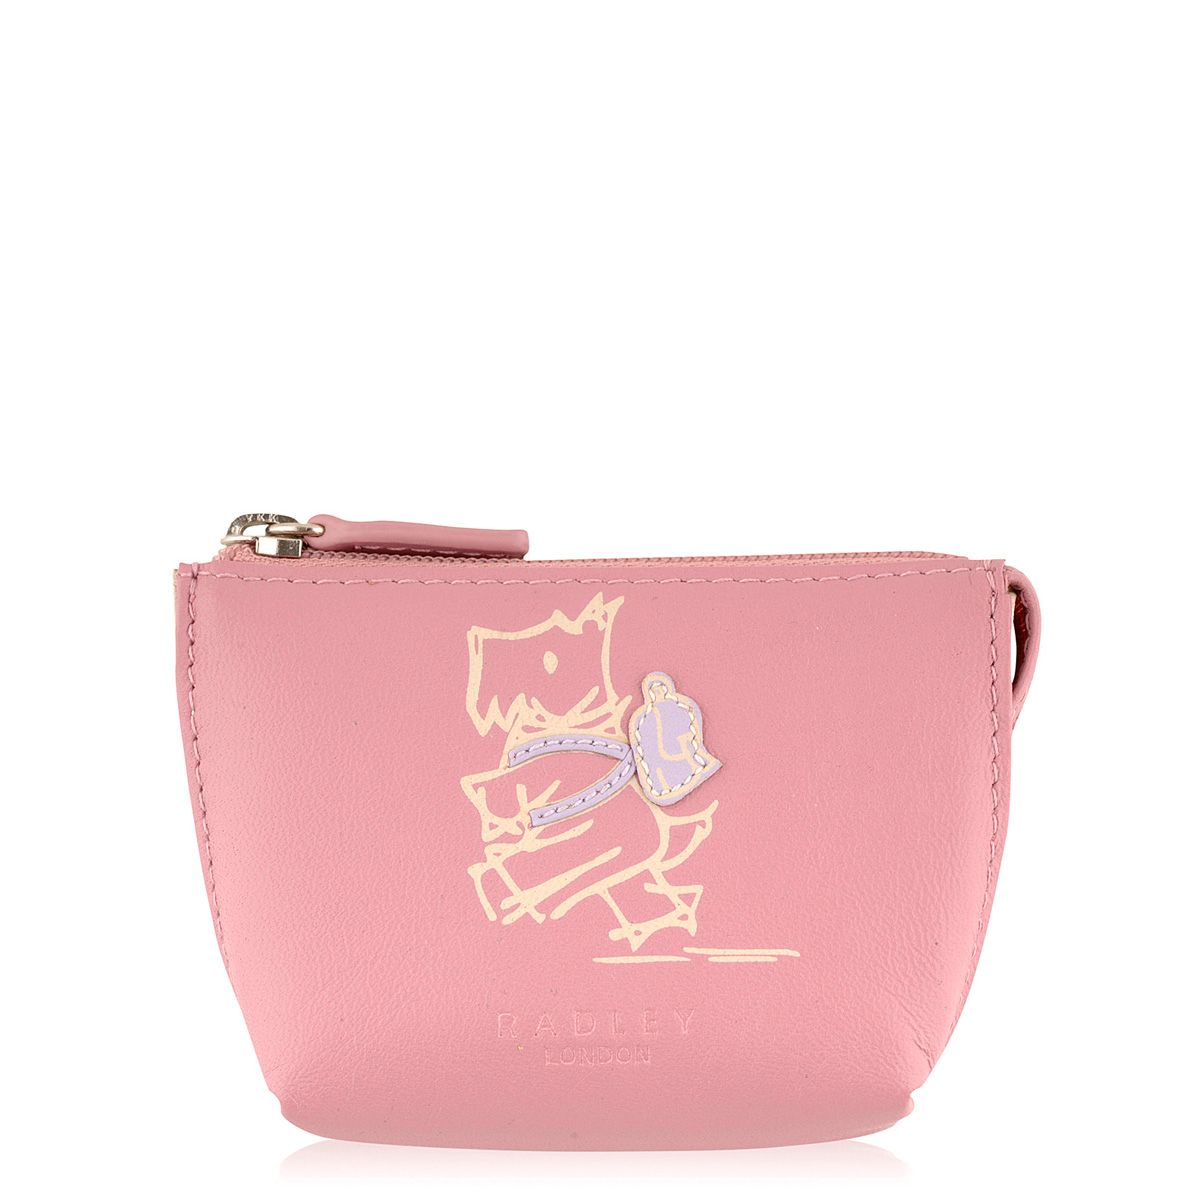 Walk the walk pink coin purse